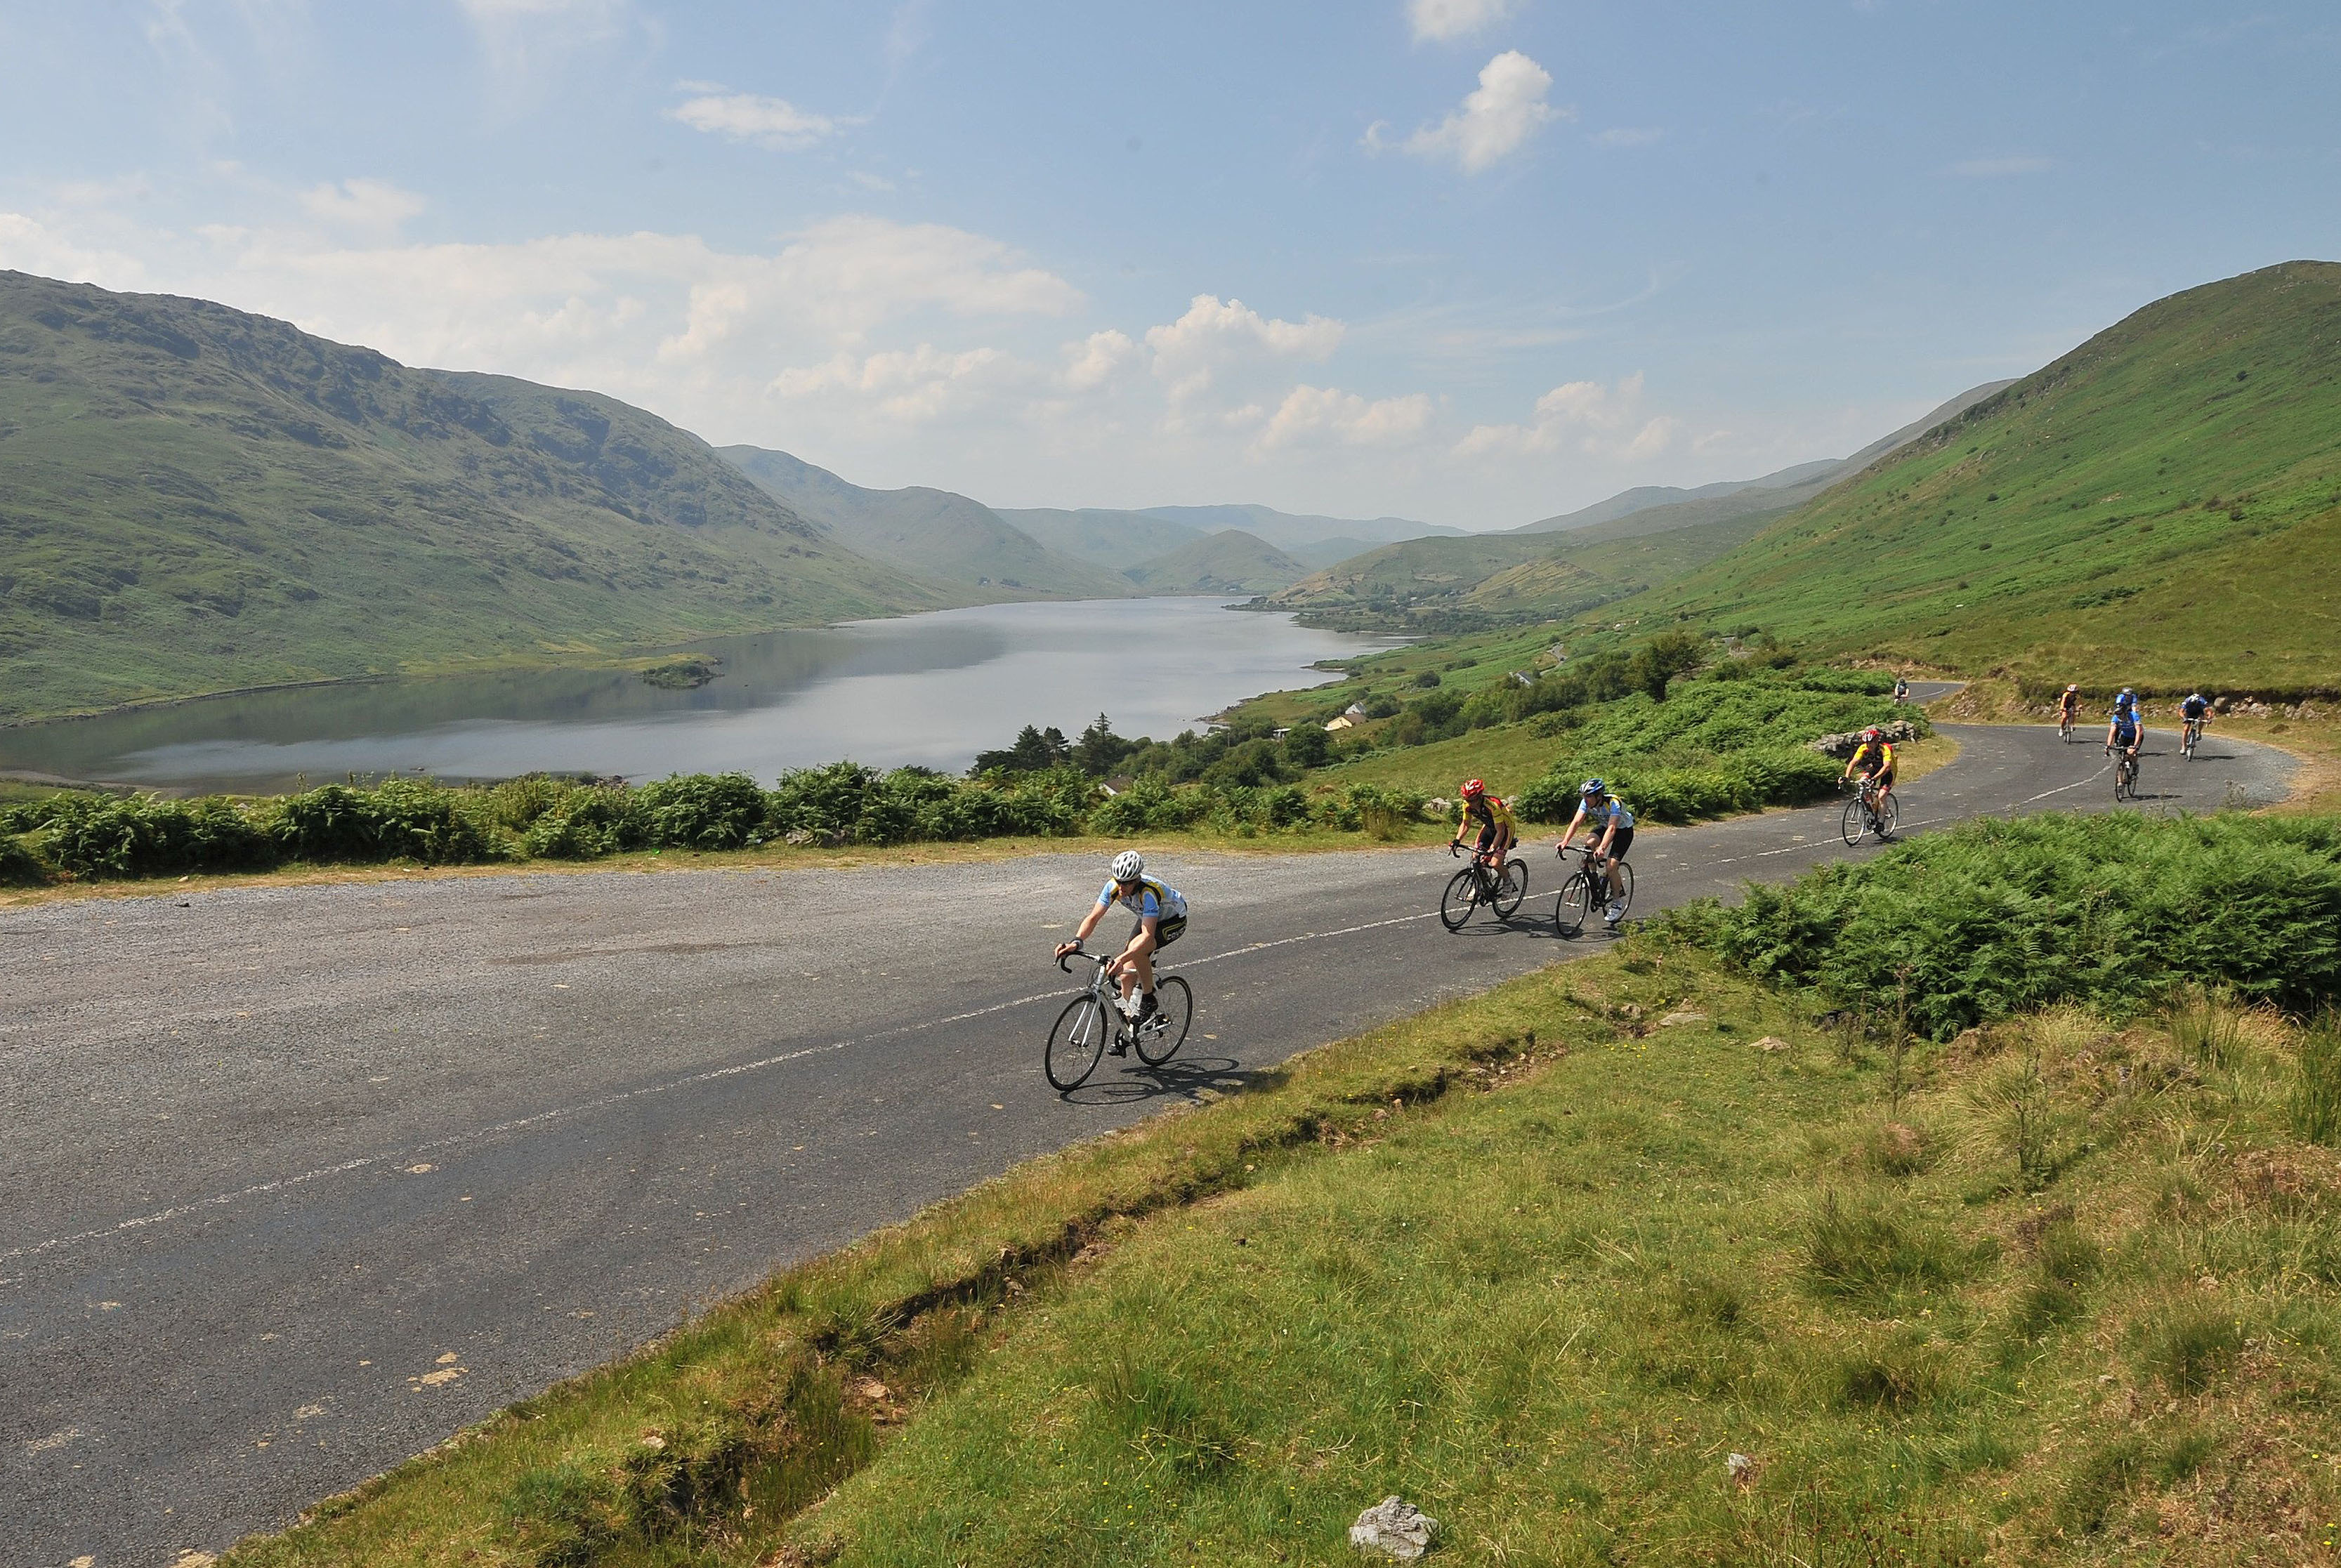 On the way up over Maumtrasna  Over 300 cyclists took part in Westportif a leisure Cycle route covering an 80km & 160km via Louisburgh Doolough, Leenaun, Maam Cross, Tourmakeady and back to Westport. Proceeds from the cycle were in aid of Pieta House. Pic Conor McKeown